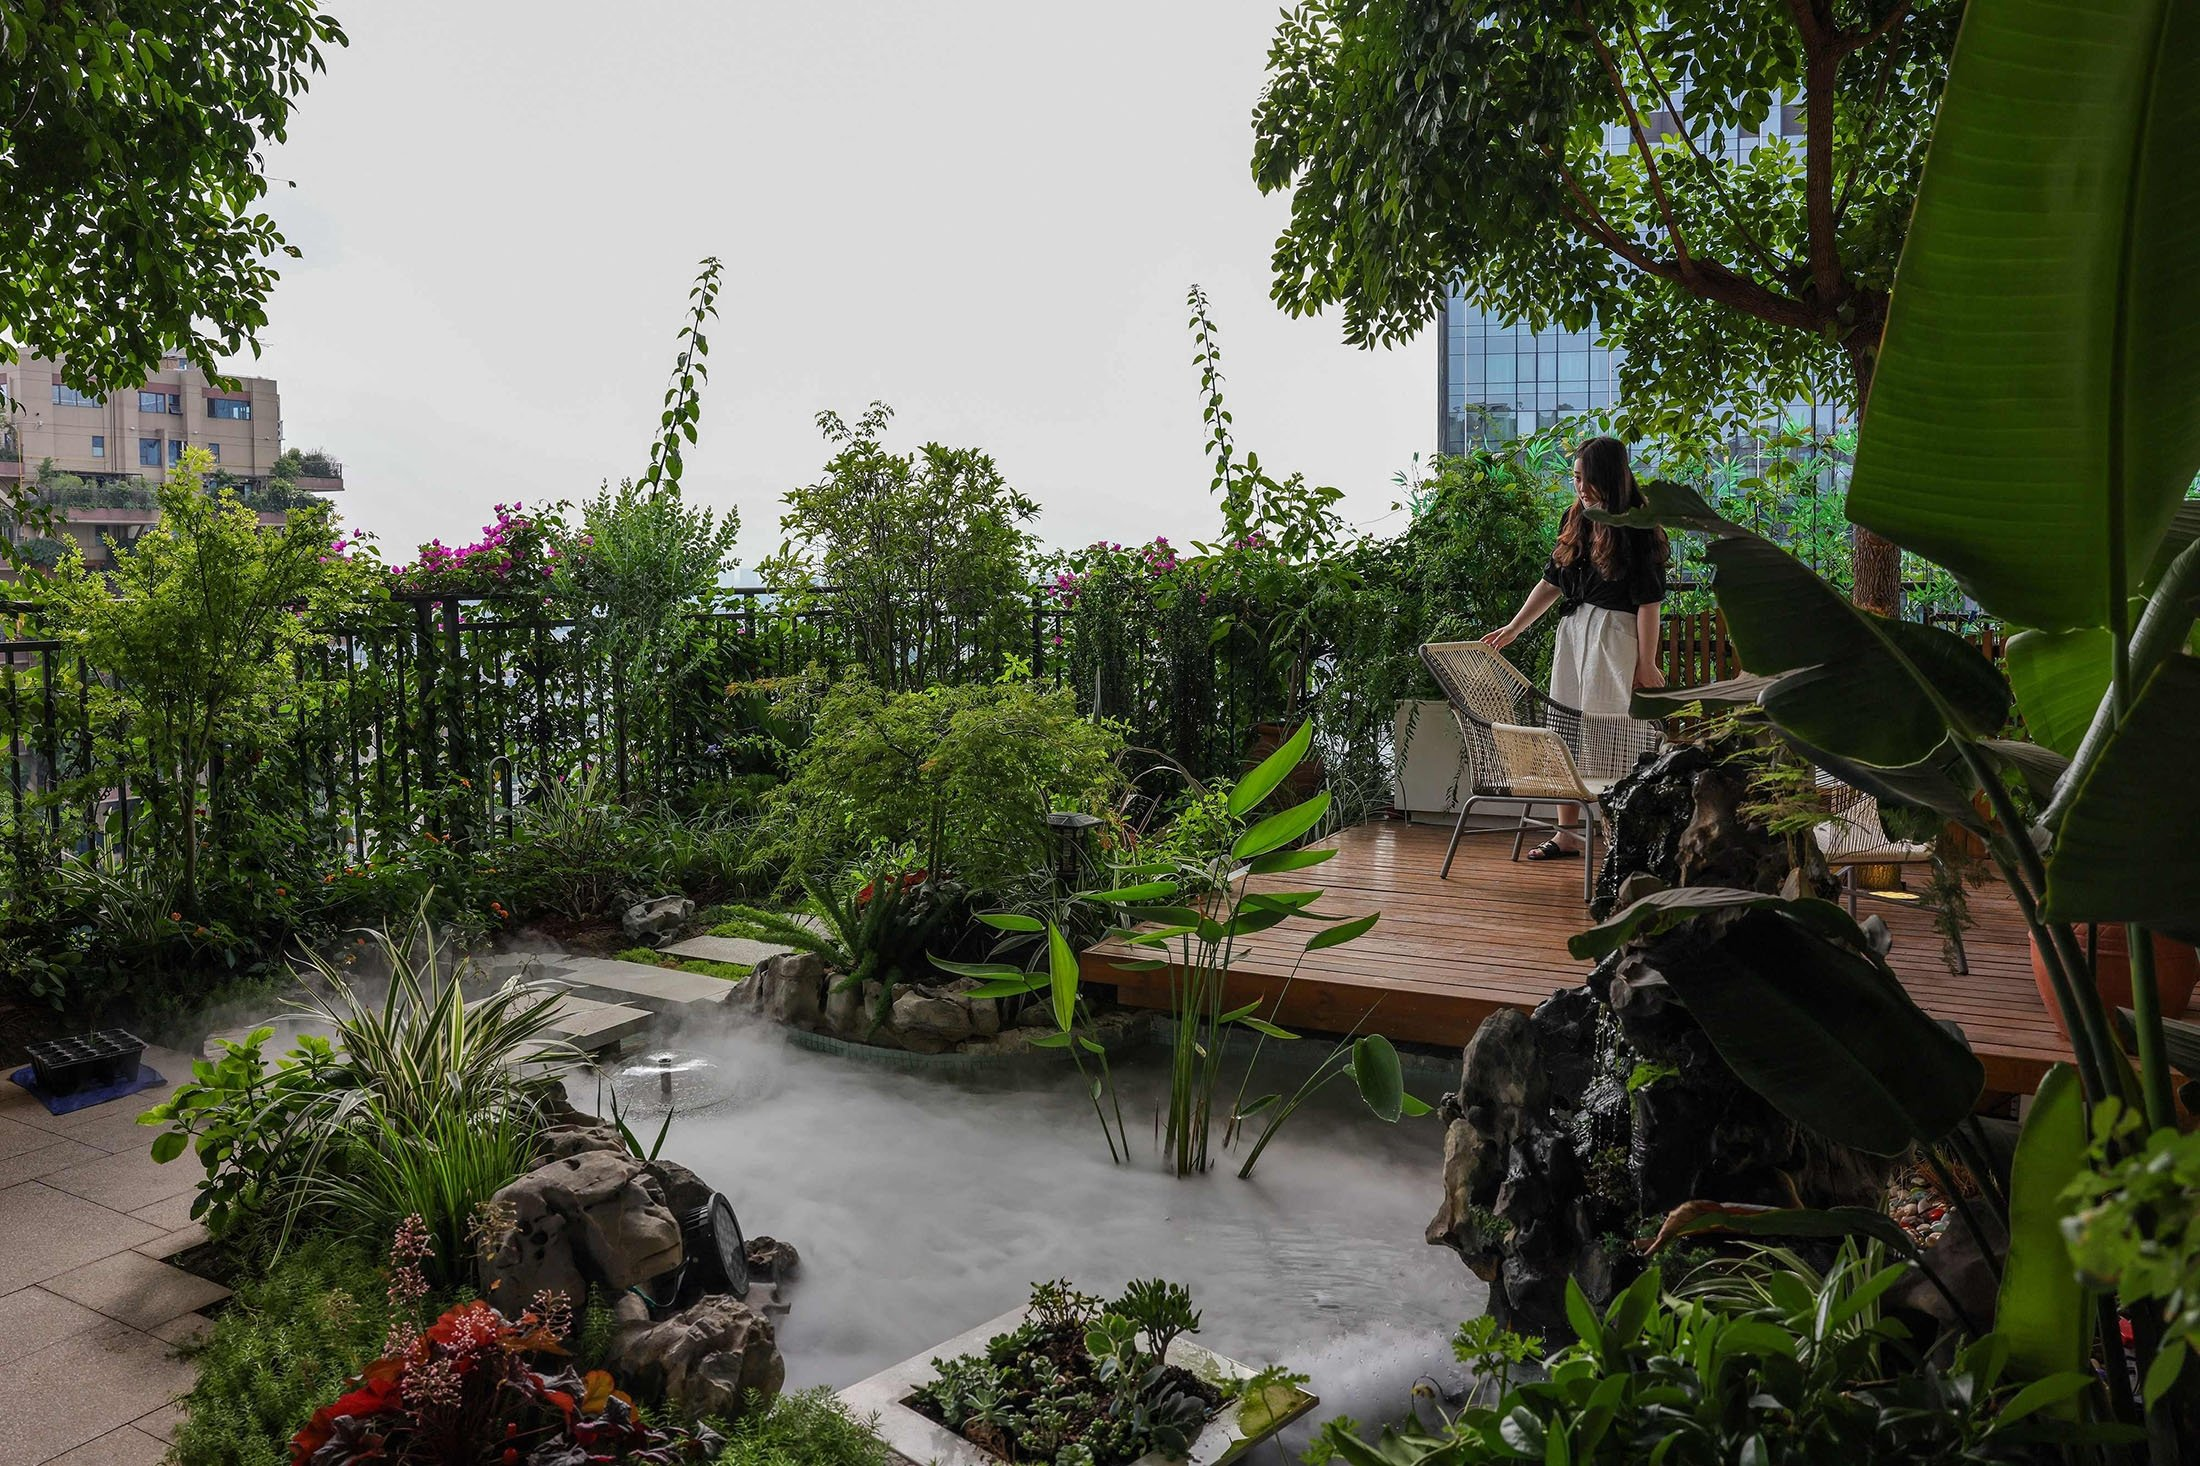 A woman rests on a balcony covered with plants at a residential community in Chengdu in China's southwestern Sichuan province, China, July 12, 2021. (AFP Photo)